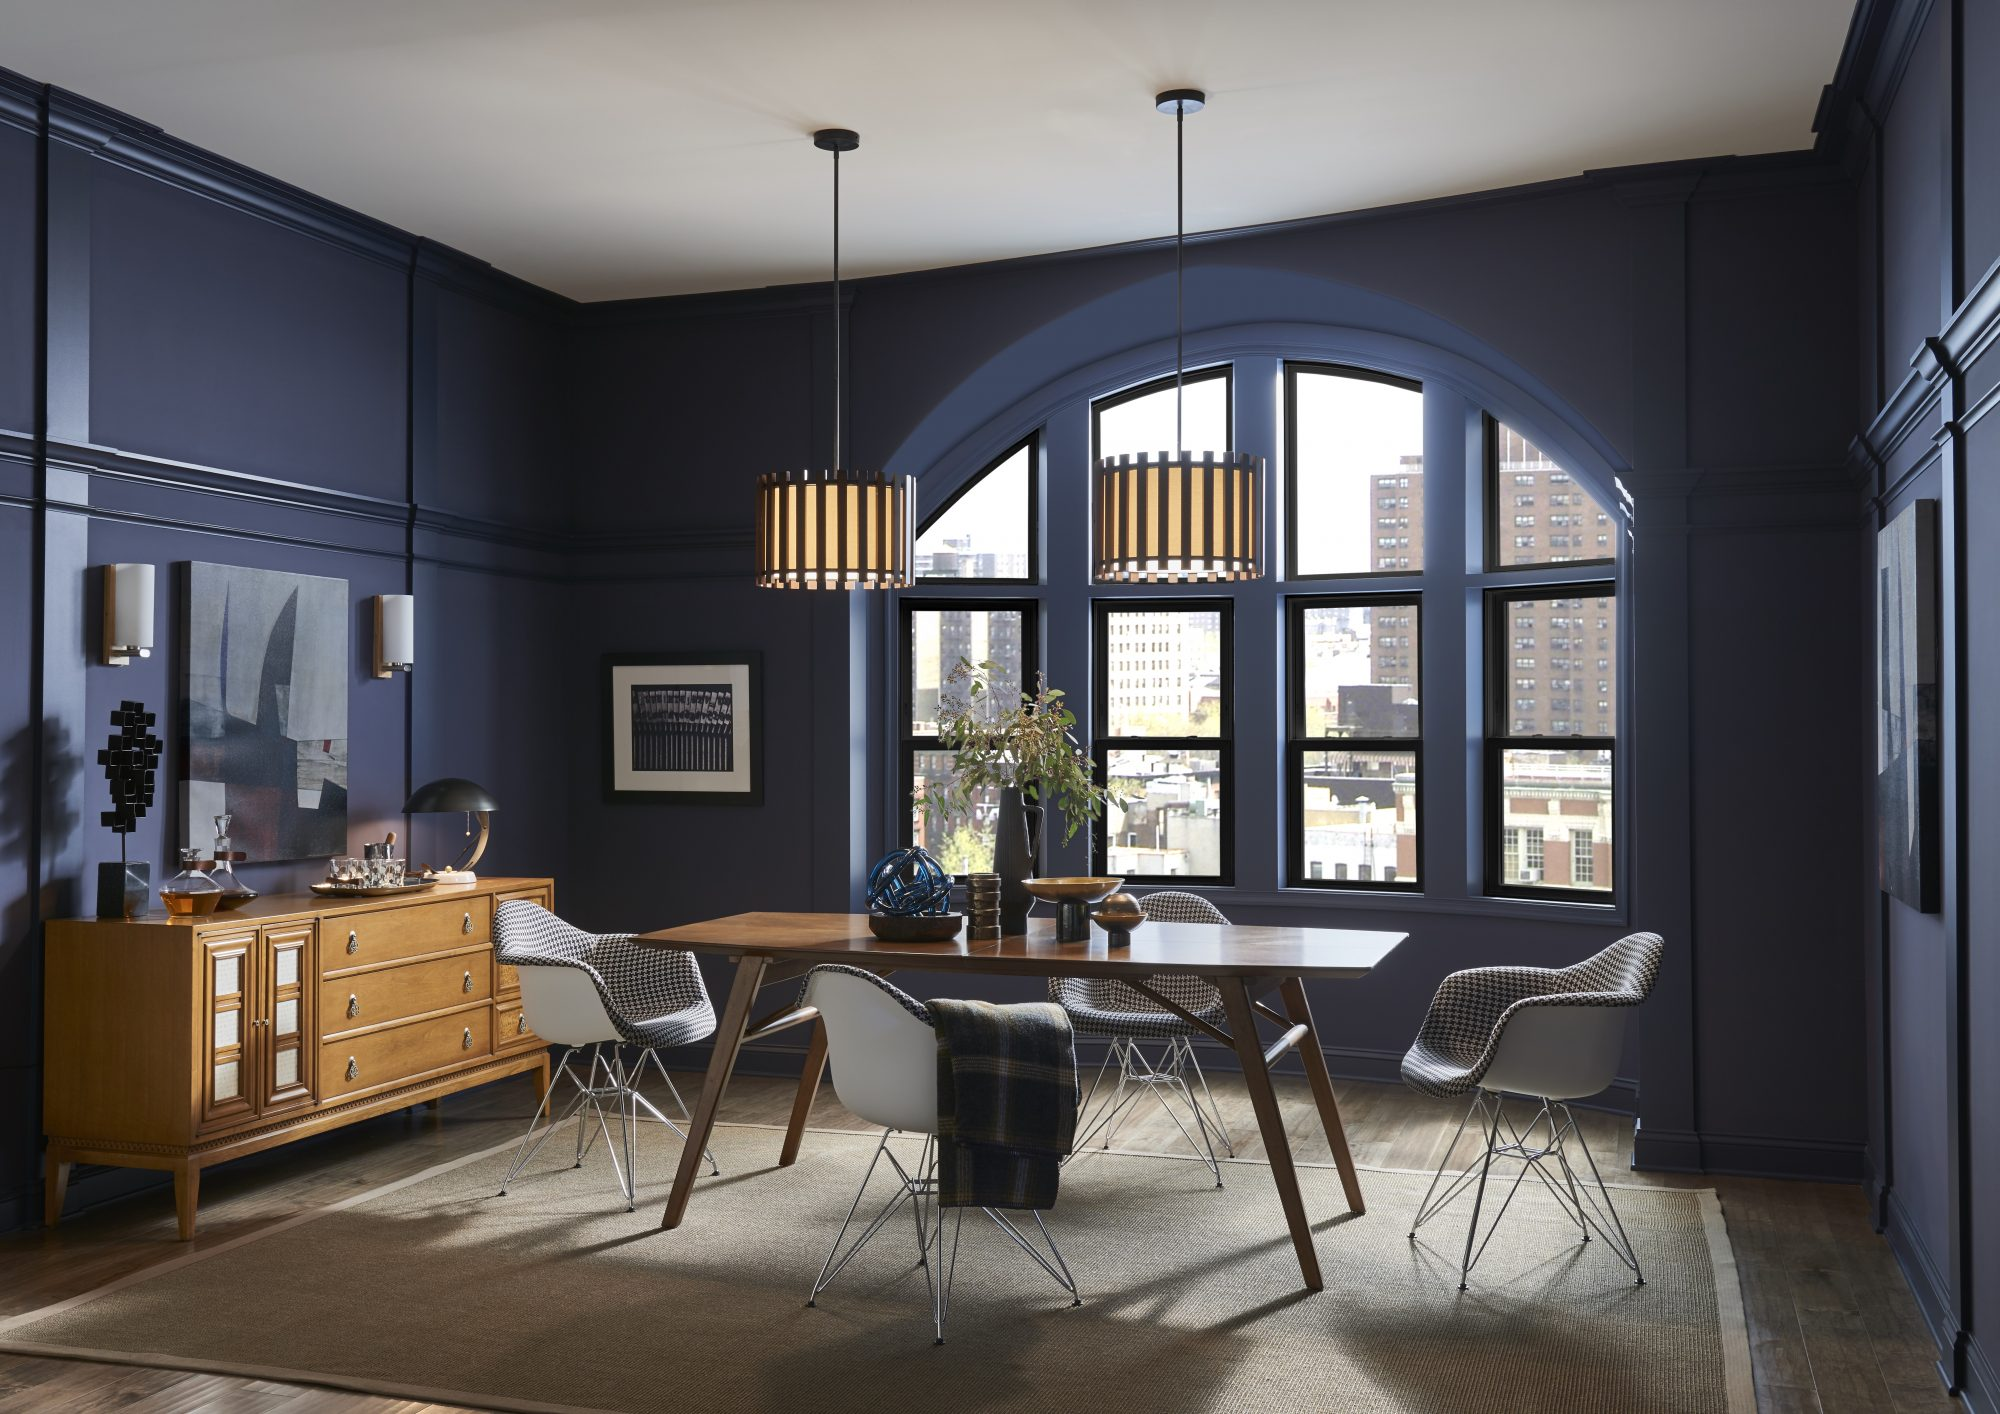 Sherwin Williams Predicts These Will Be The Most Popular Paint